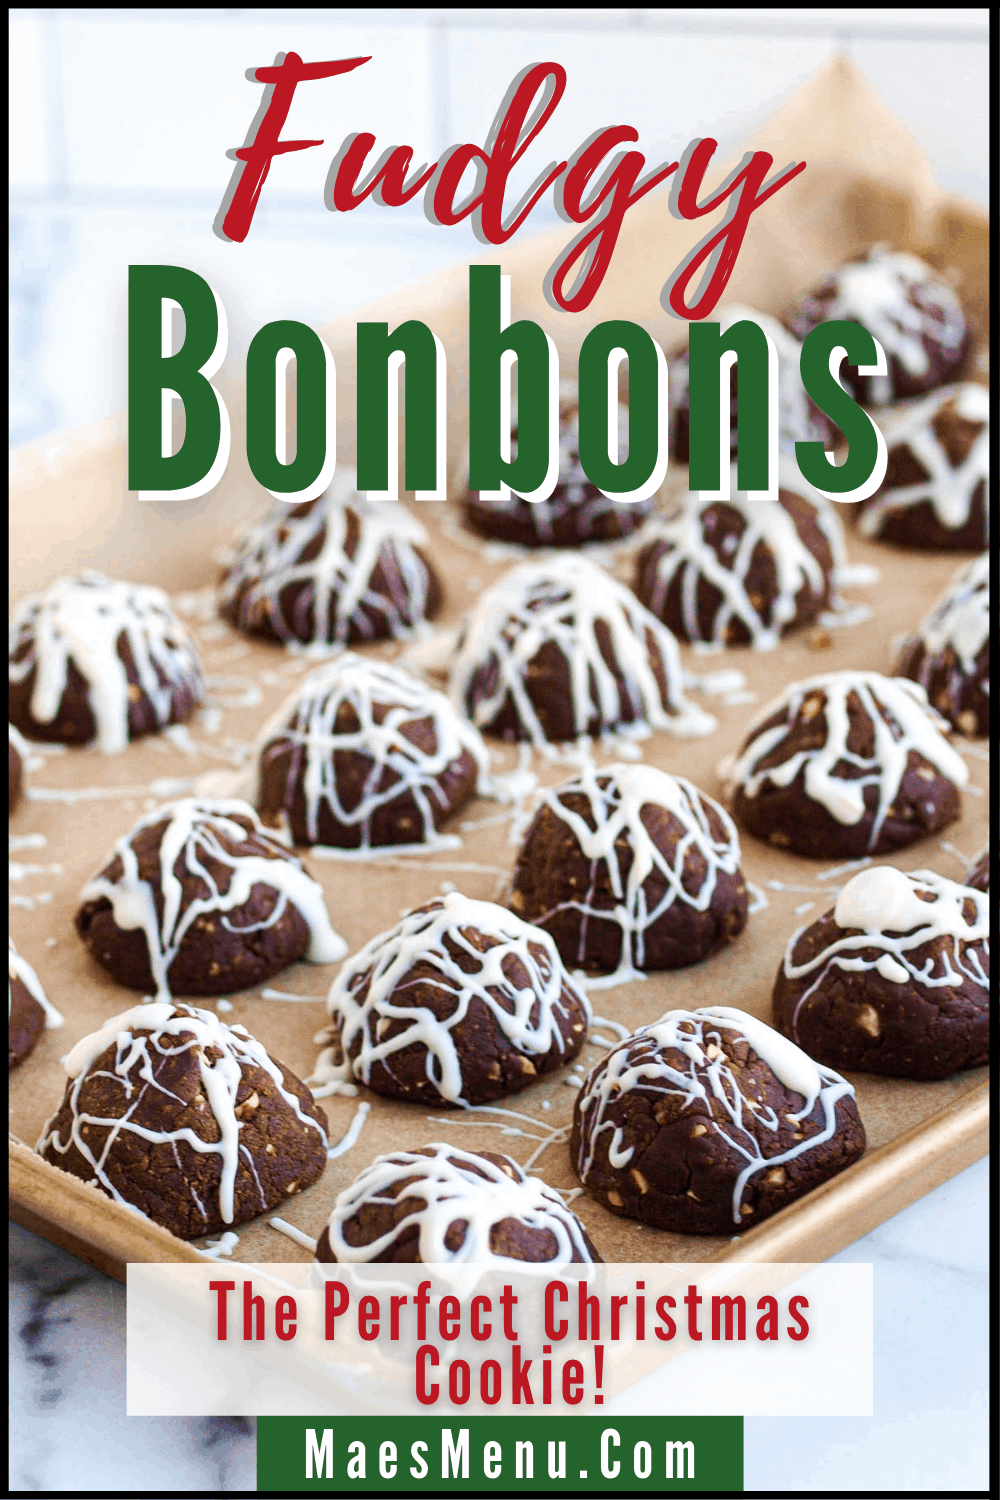 A pinterest pin for Fudgy Bonbons Christmas cookie recipe with a side shot of the cookies on a baking tray